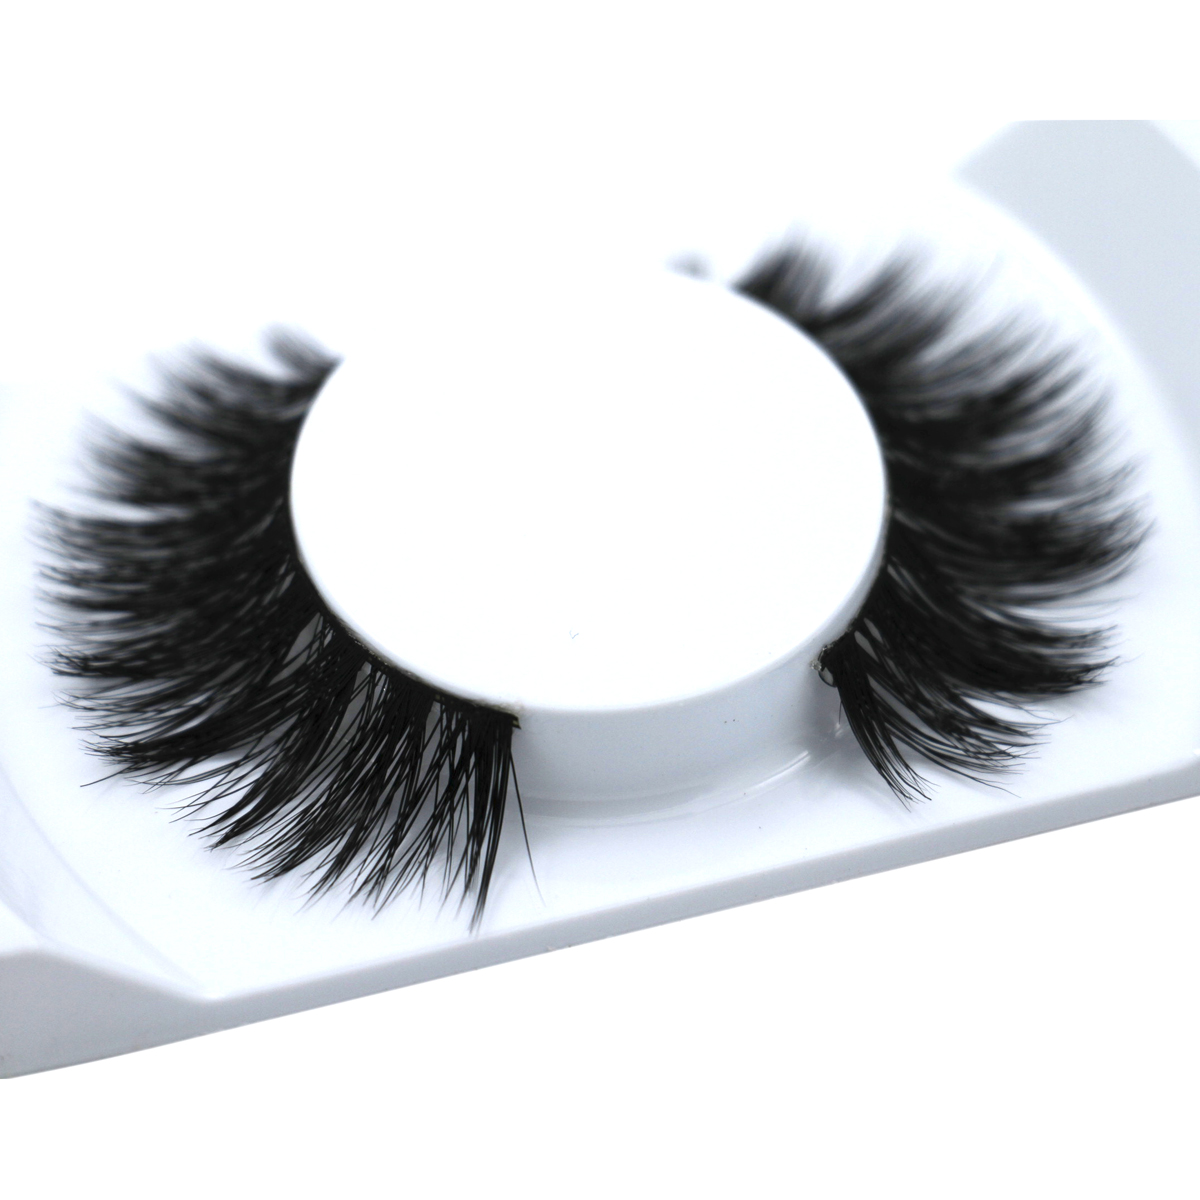 Original Operacosmetics 1 Pair 100% Real Mink Natural Thick False Fake Eyelashes Eye Lashes Makeup Extension Beauty Tools No 001(China (Mainland))